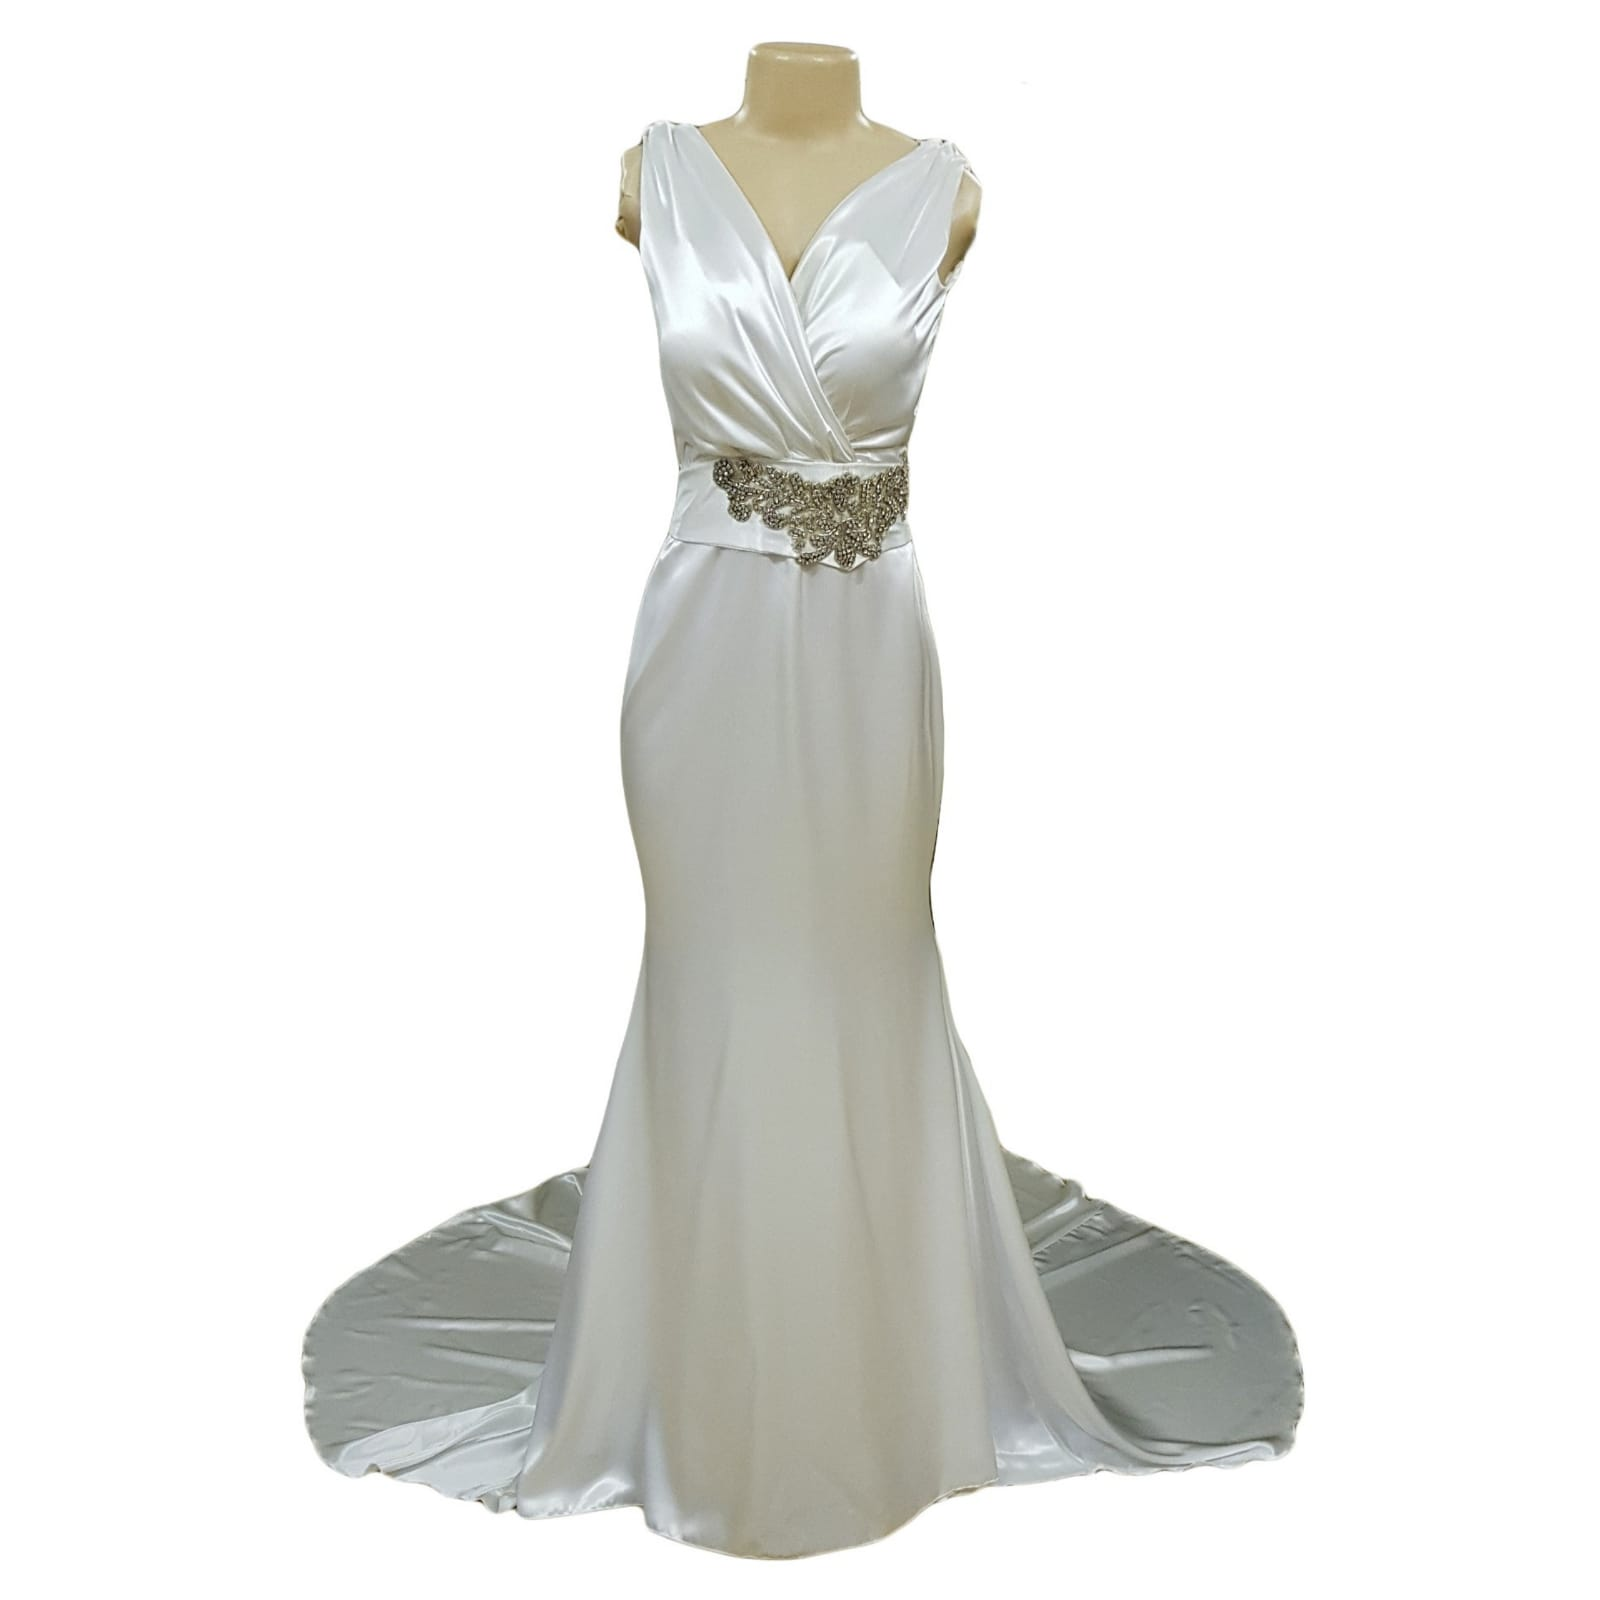 White satin soft mermaid wedding dress with silver belt detail 6 white satin soft mermaid wedding dress, cross busted neckline, open cowl neck back. Angled belt with diamante detail. Train with train hookup.